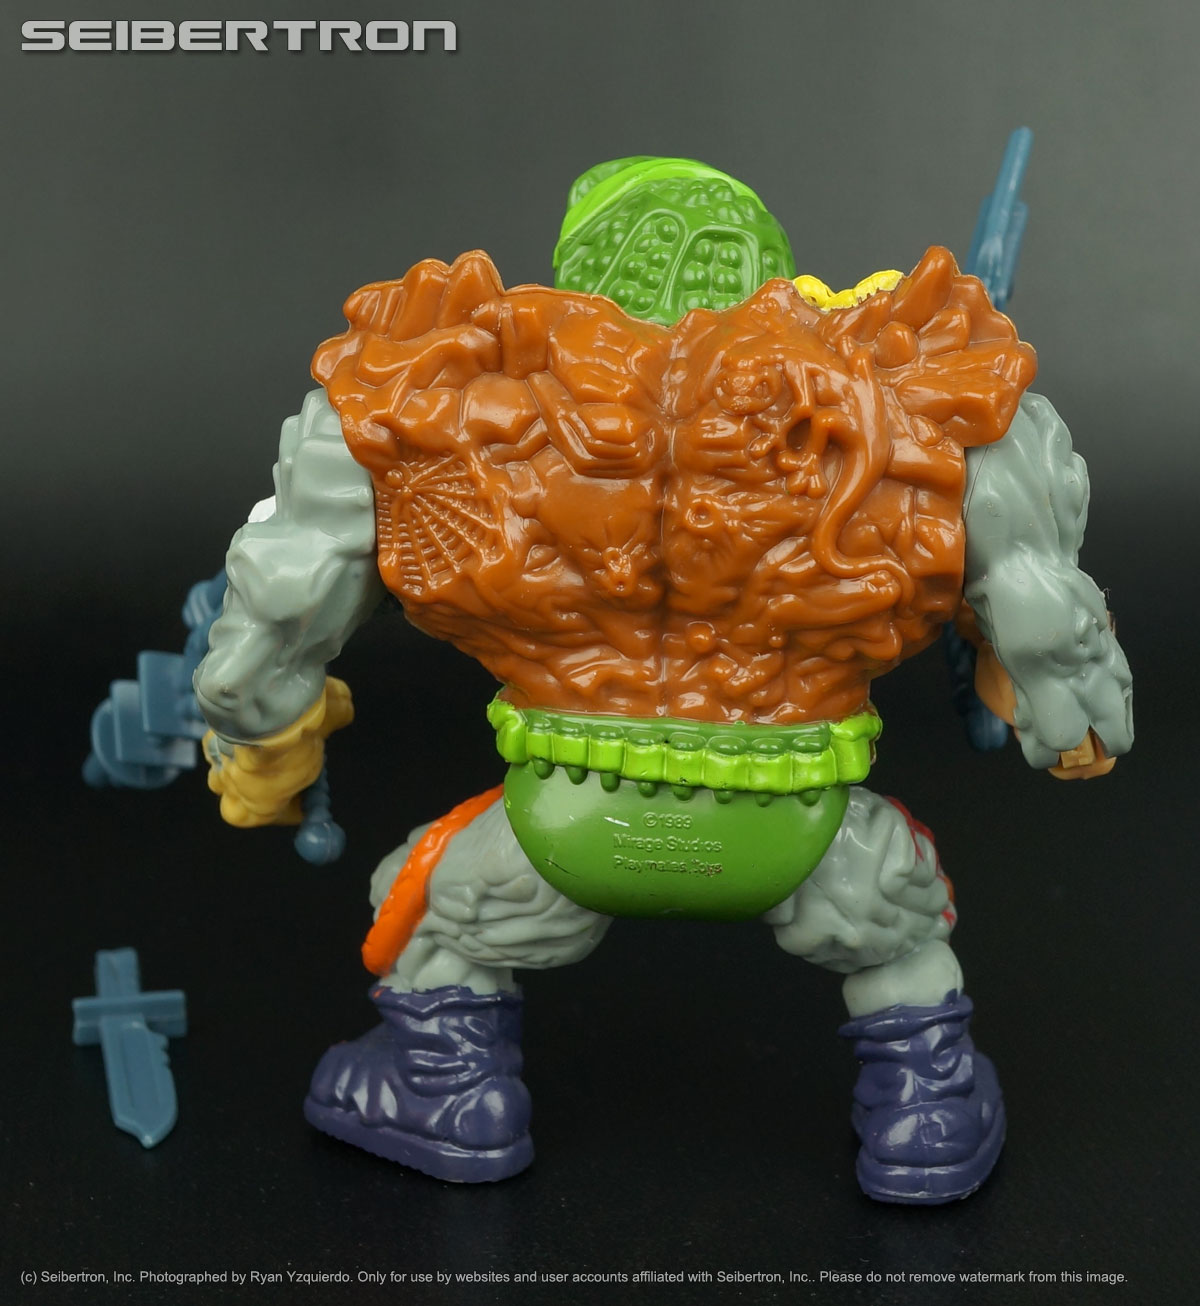 Teenage Mutant Ninja Turtles, Masters of the Universe, Transformers, Comic Books, DVDs and more listings from Seibertron.com: GENERAL TRAAG Teenage Mutant Ninja Turtles 100% complete vintage 1989 TMNT